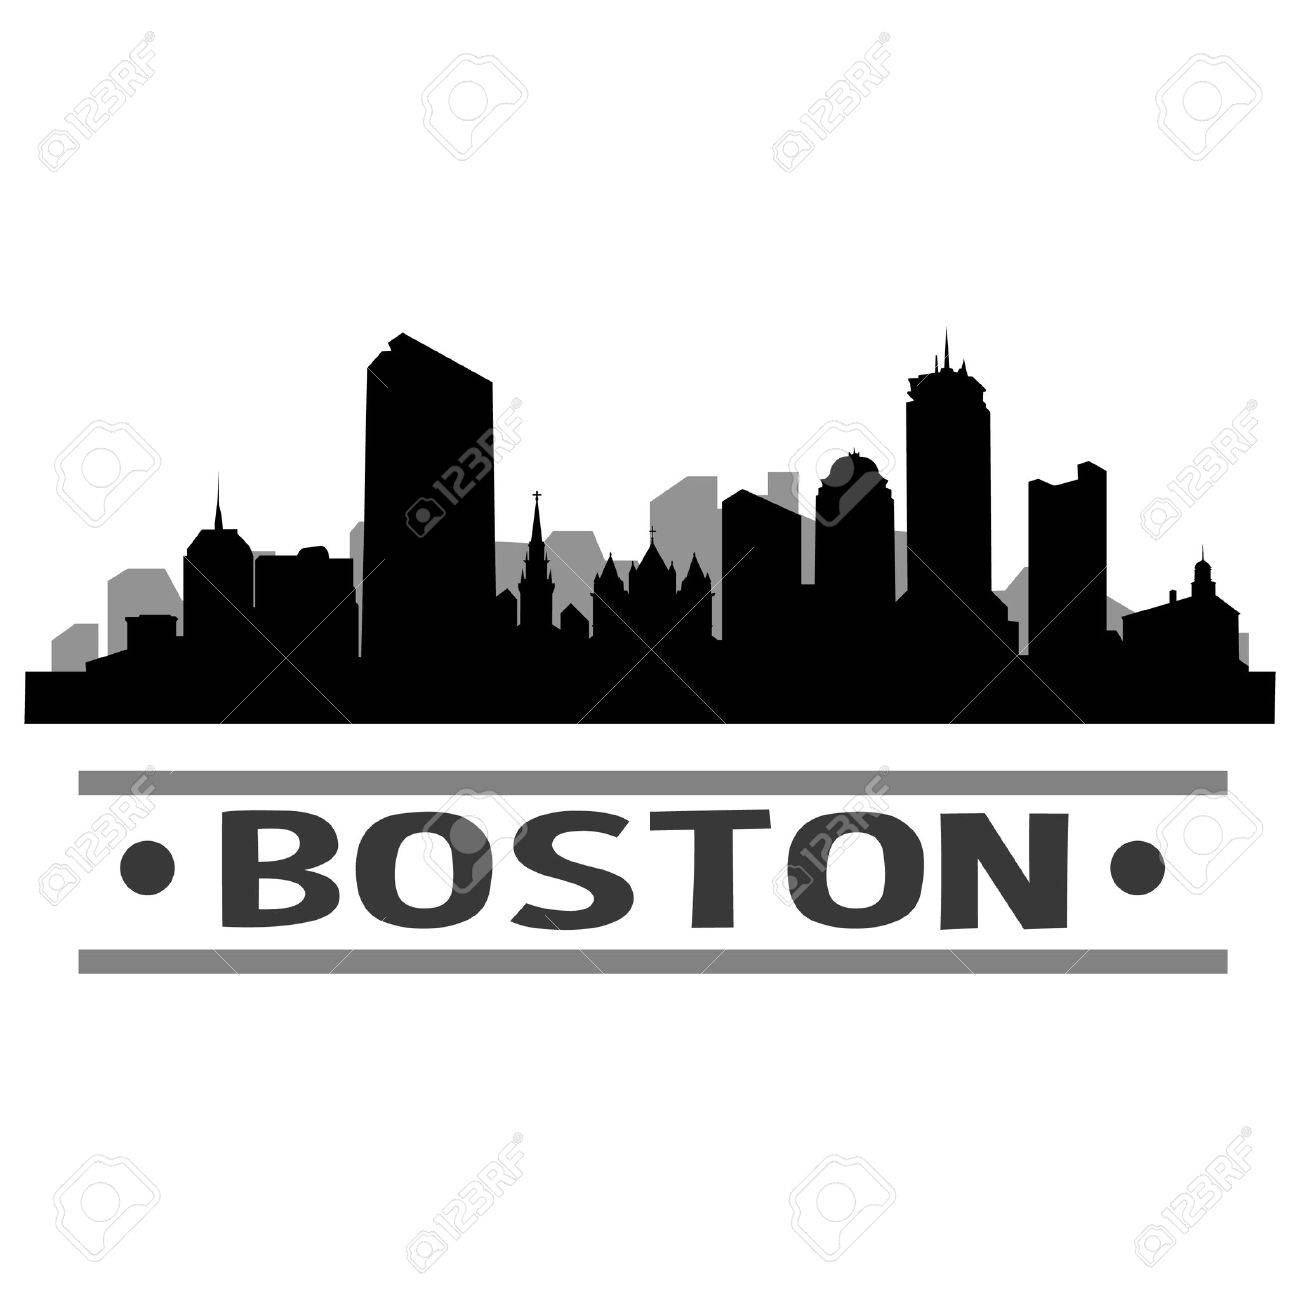 Boston clipart 4 » Clipart Station.